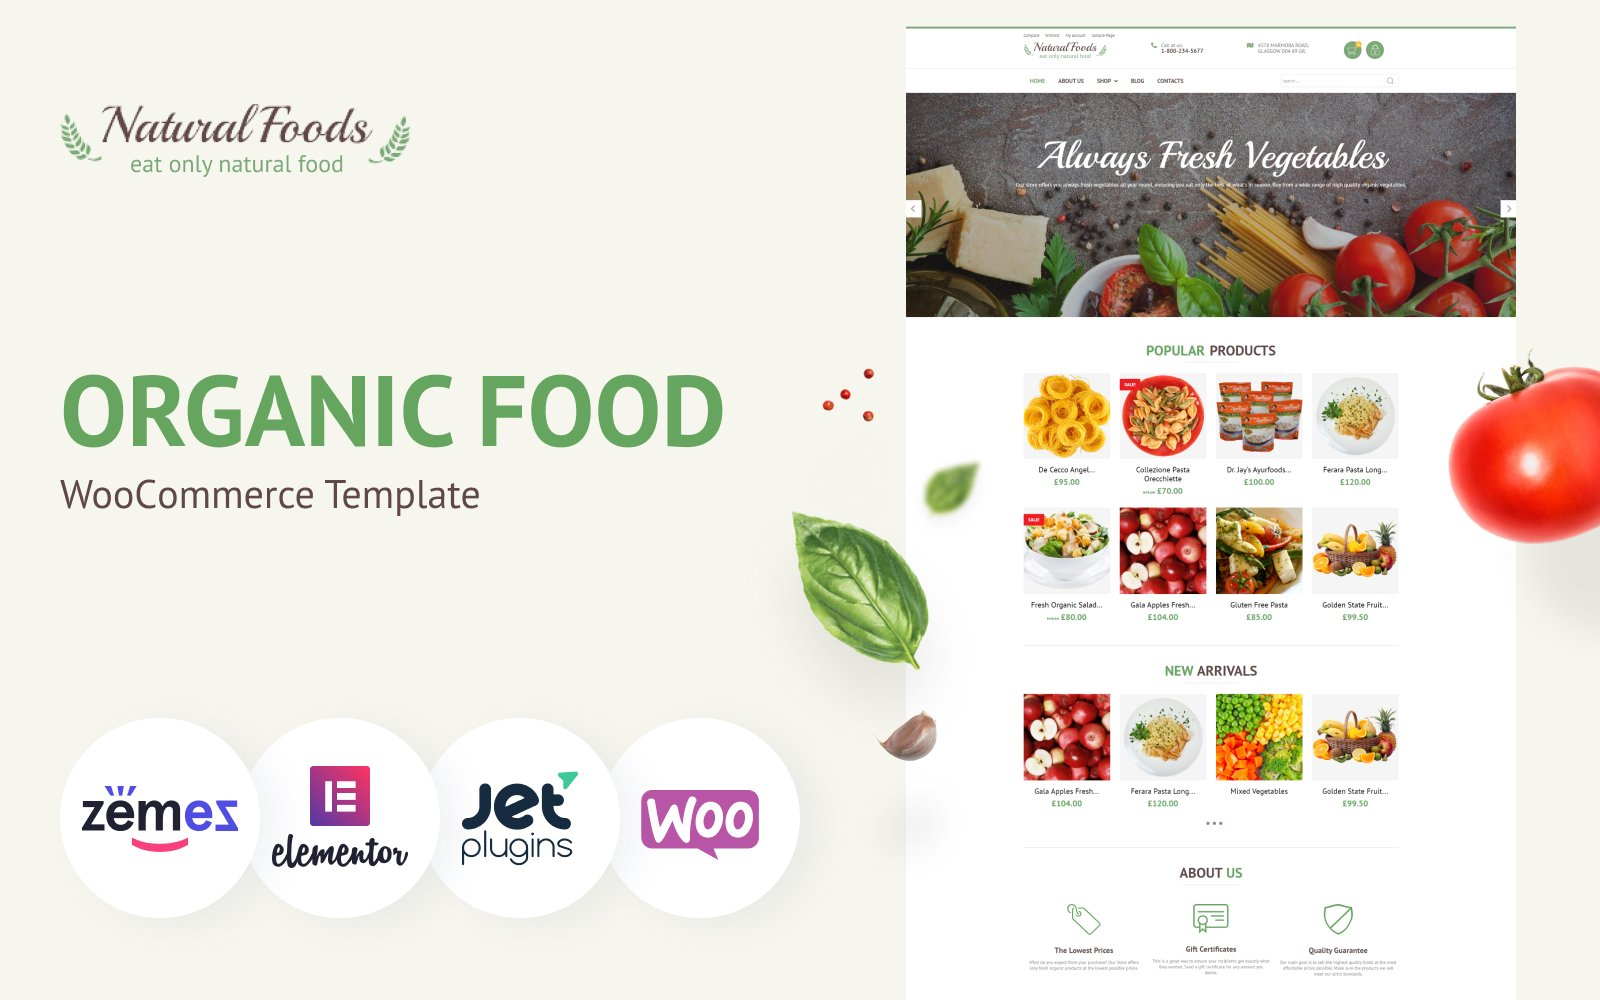 Natural Foods - Organic Food Template for Online Stores №55738